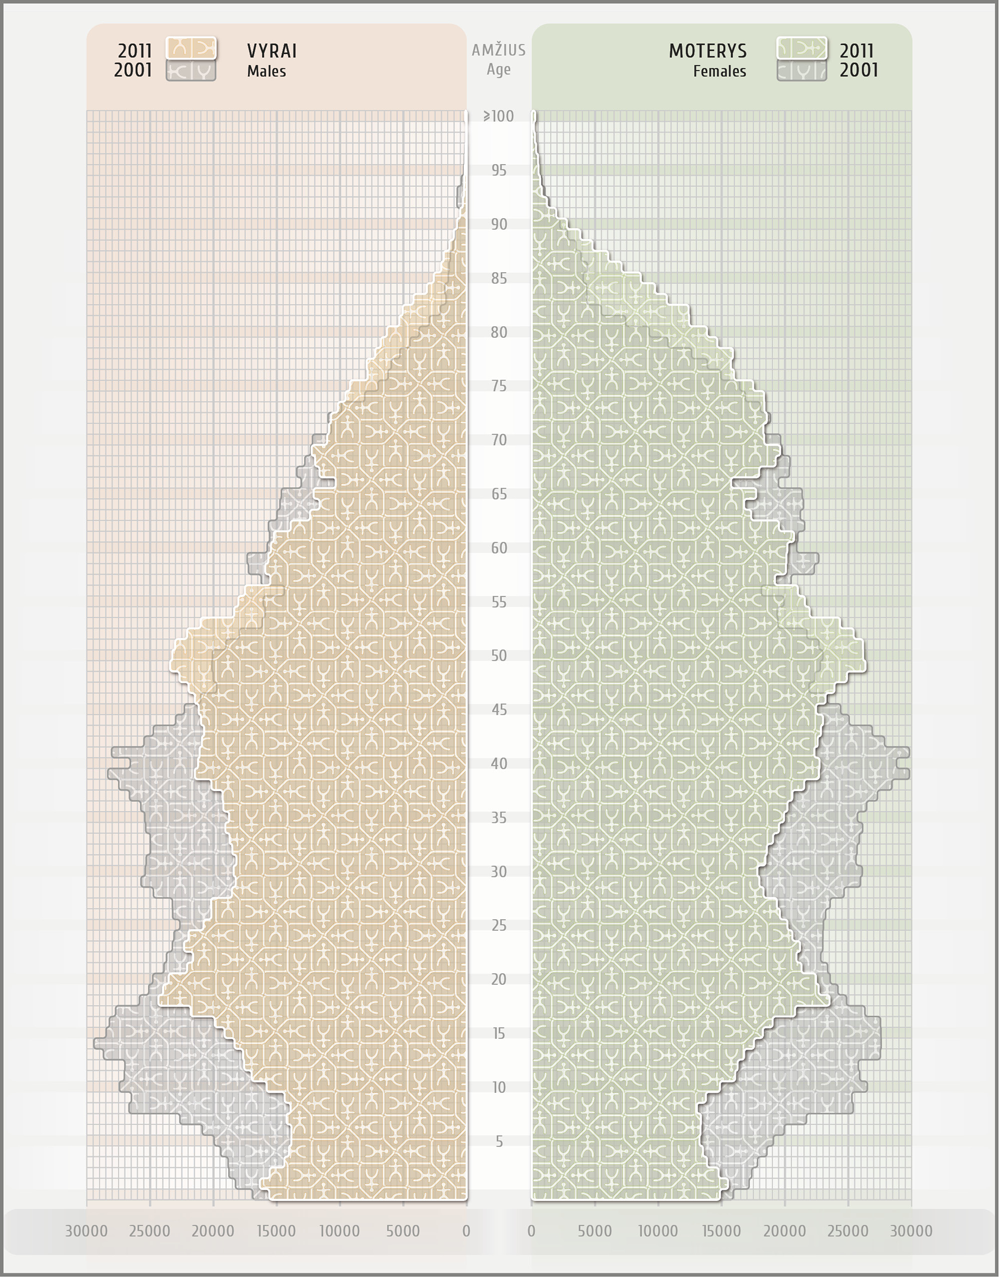 LT – Grafikas–piramidė. Jame pavaizduota: Lietuvos gyventojai pagal lytį ir amžių, vyrų ir moterų pokytis nuo 2001 m. iki 2011 m.  EN – Graph-pyramid. It shows the Lithuanian population by sex and age, the change in the number of males and females from 2001 to 2011.